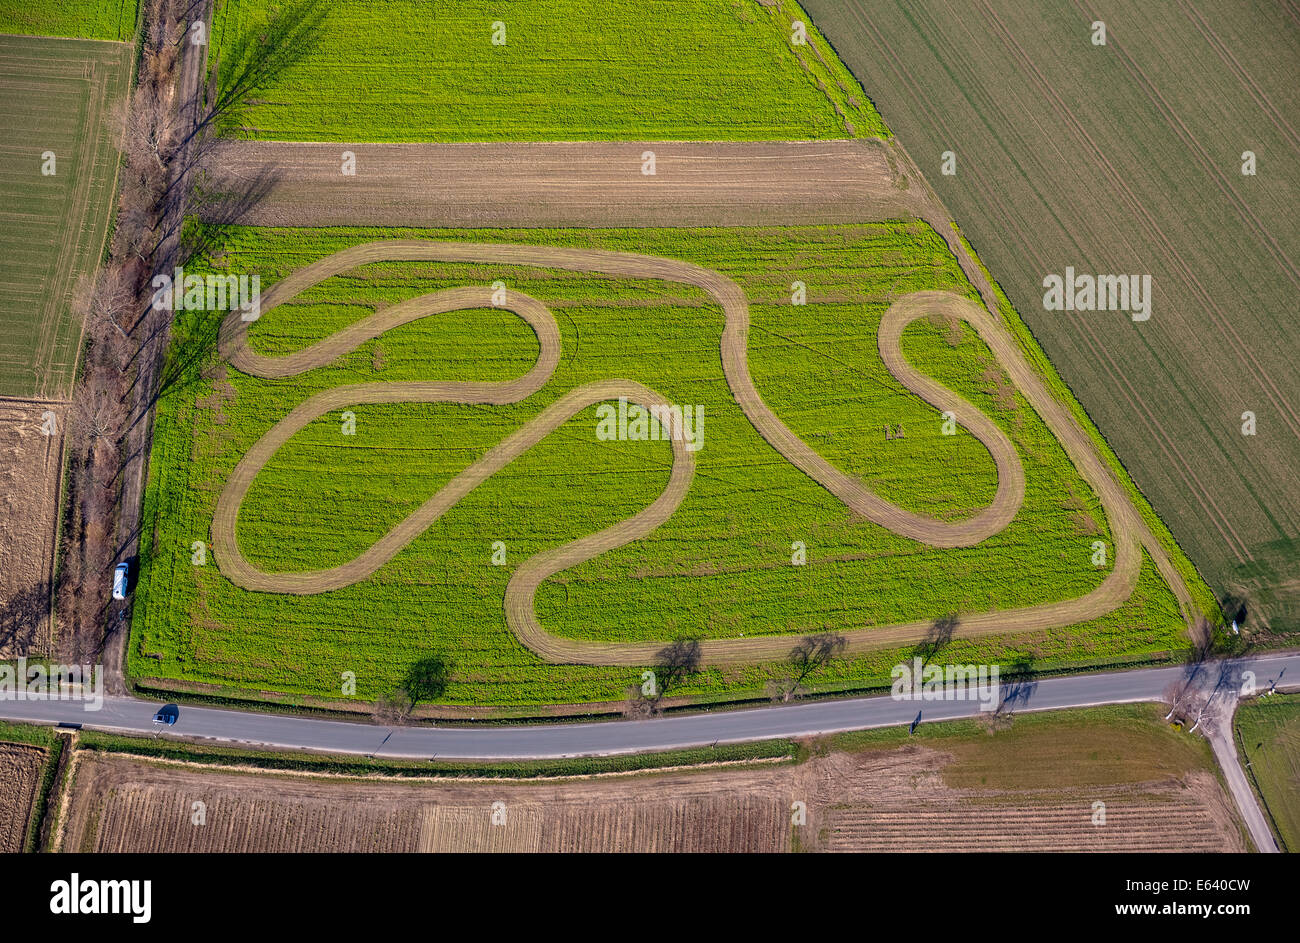 Track And Field Above High Resolution Stock Photography And Images Alamy